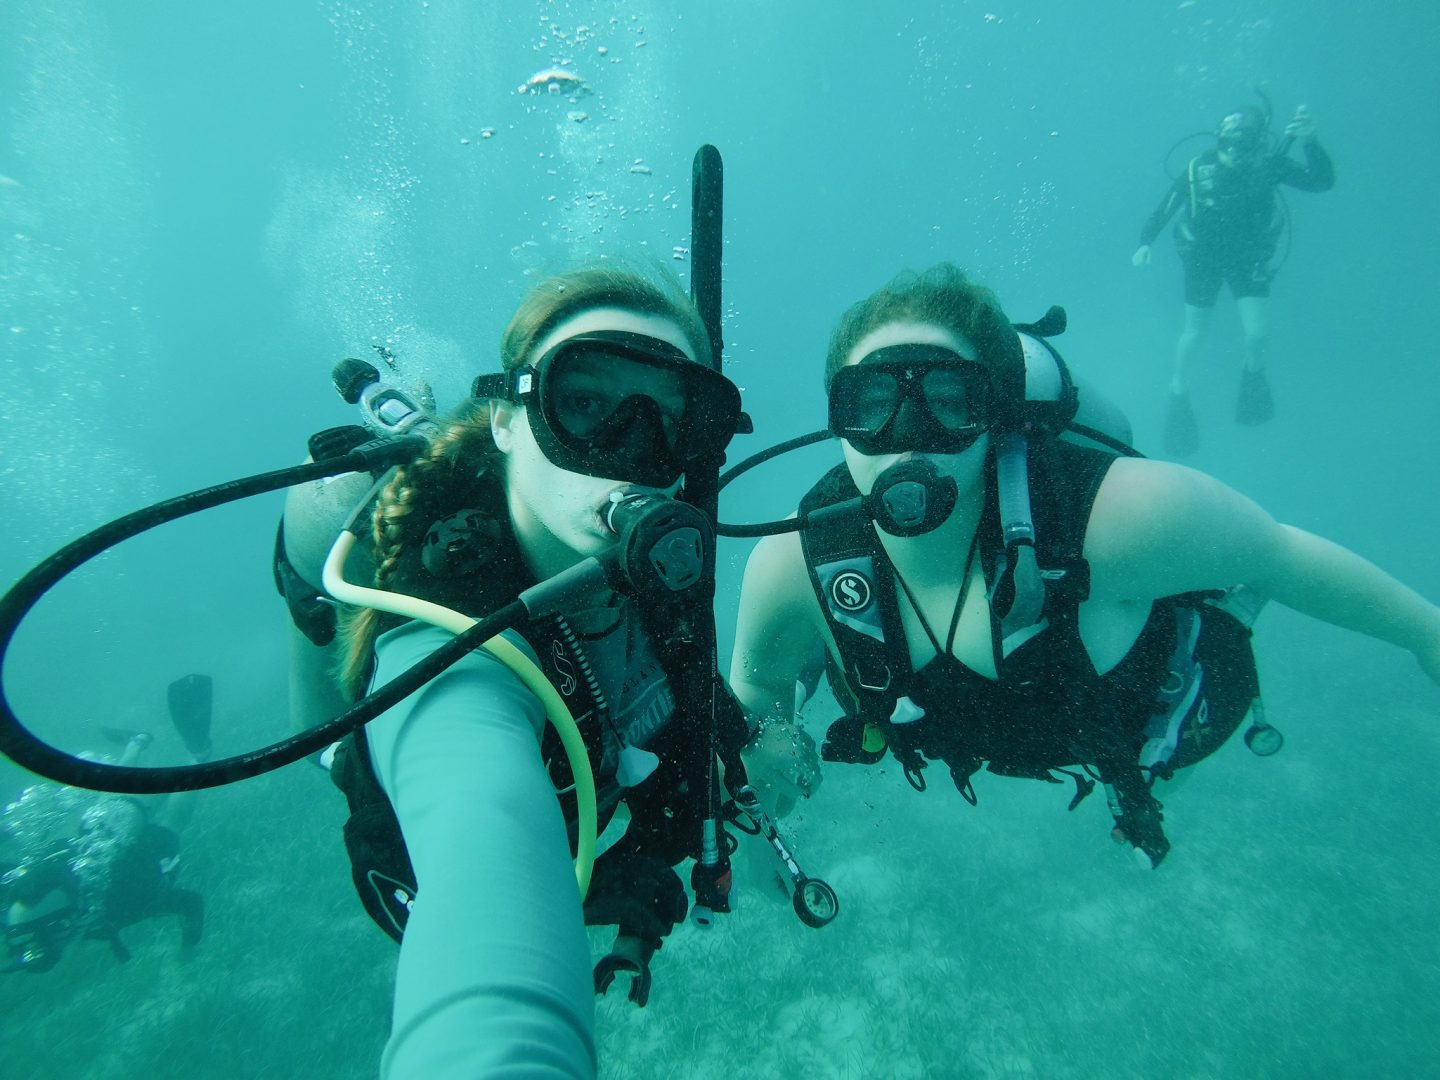 Scuba diving with my sister in the Cayman Islands!